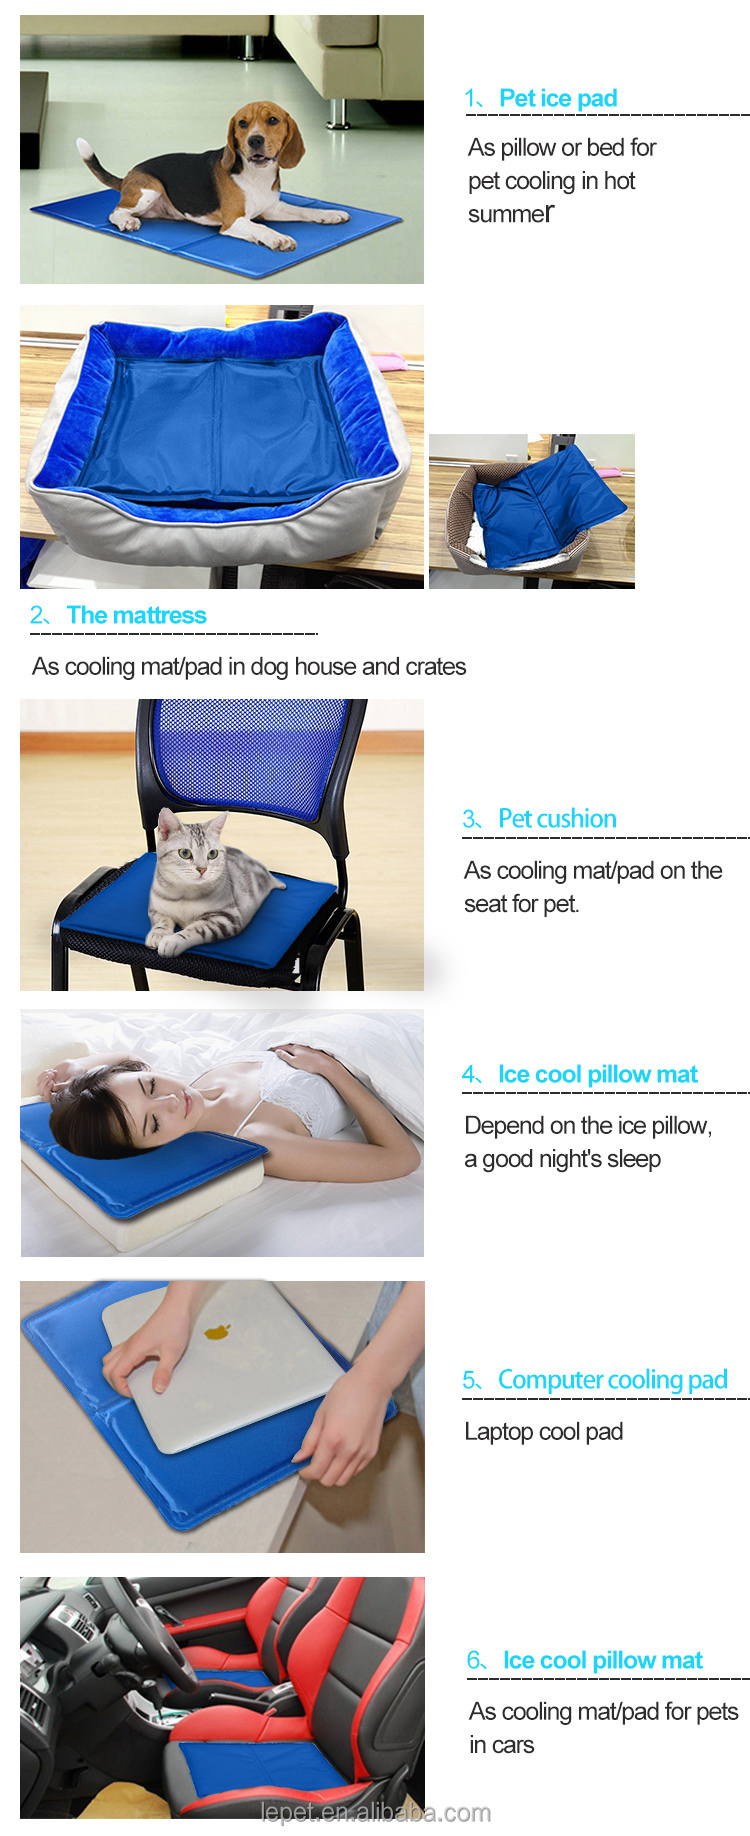 Dog Cooling Pad Bed Self-Cooling Gel Bed Cool mat for pet